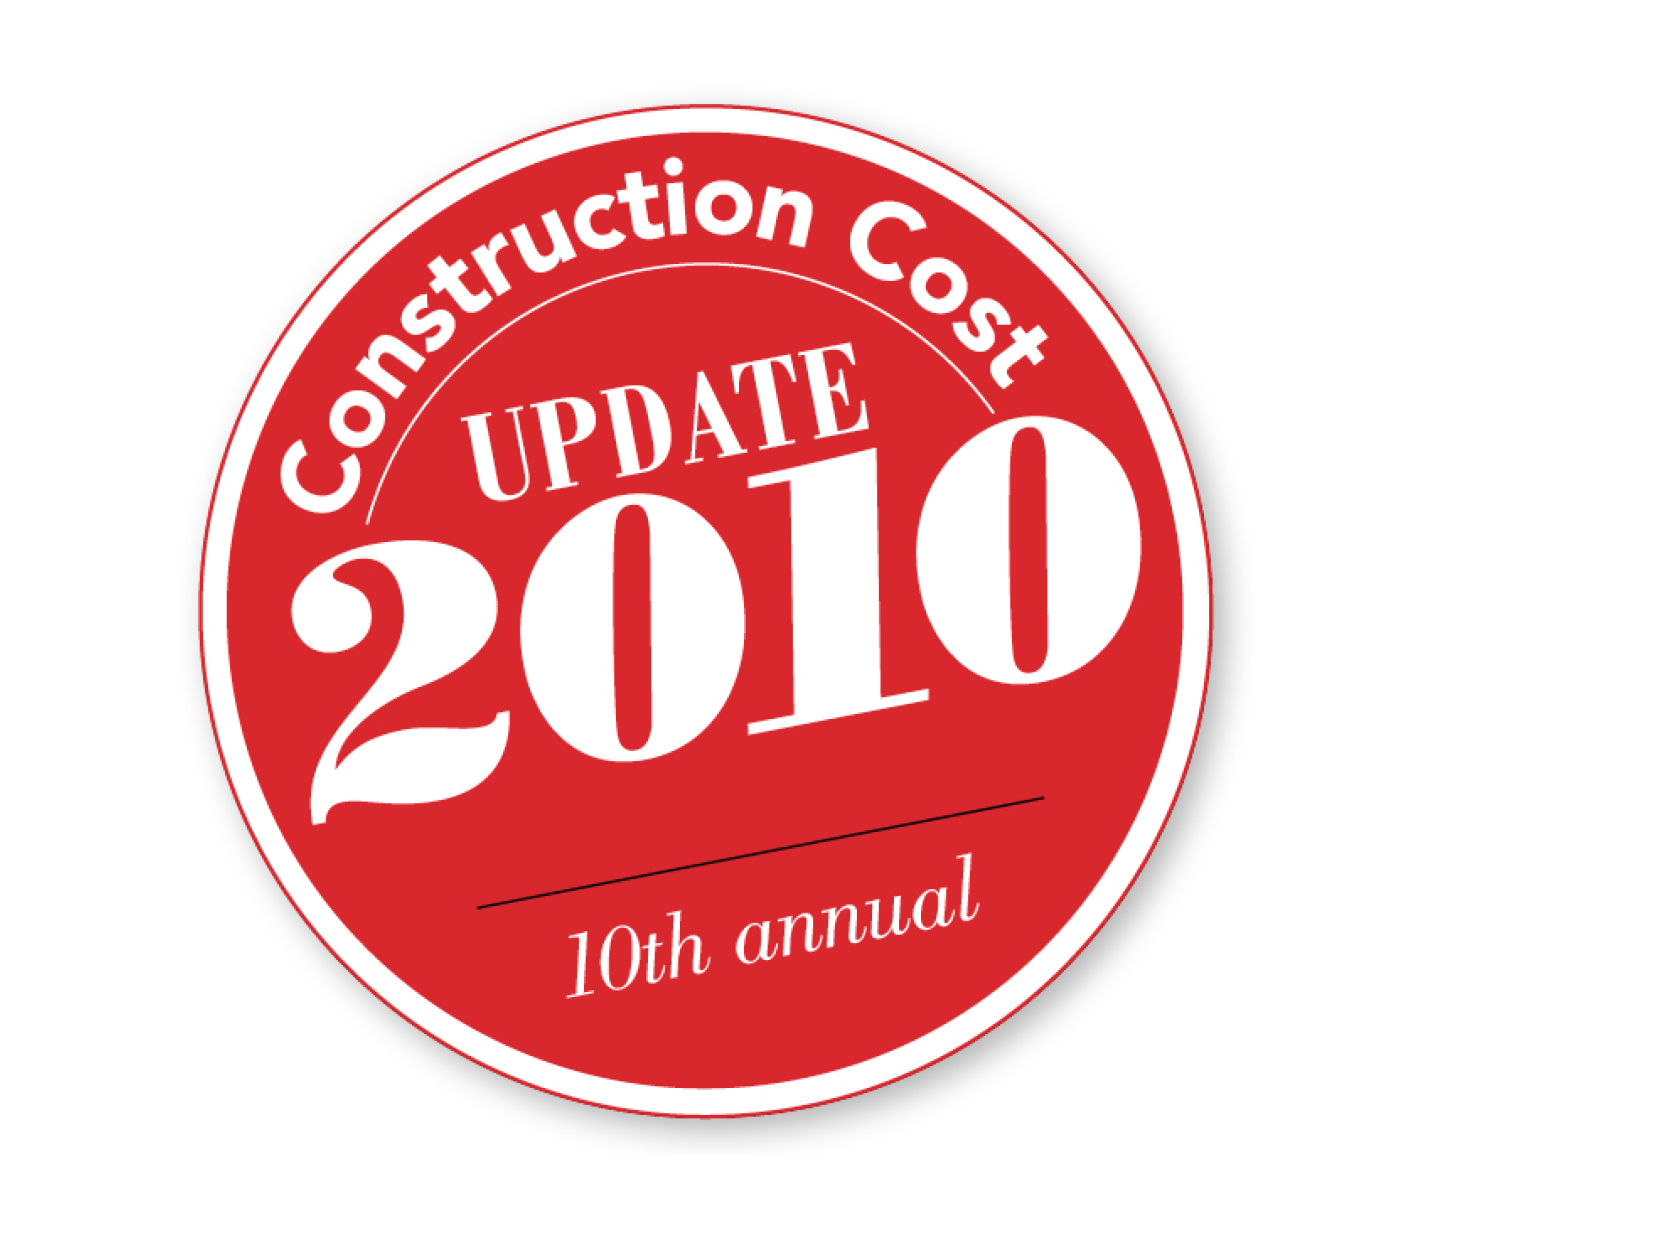 Preview of the resource library item for Kirksey Annual Construction Cost Update 2010